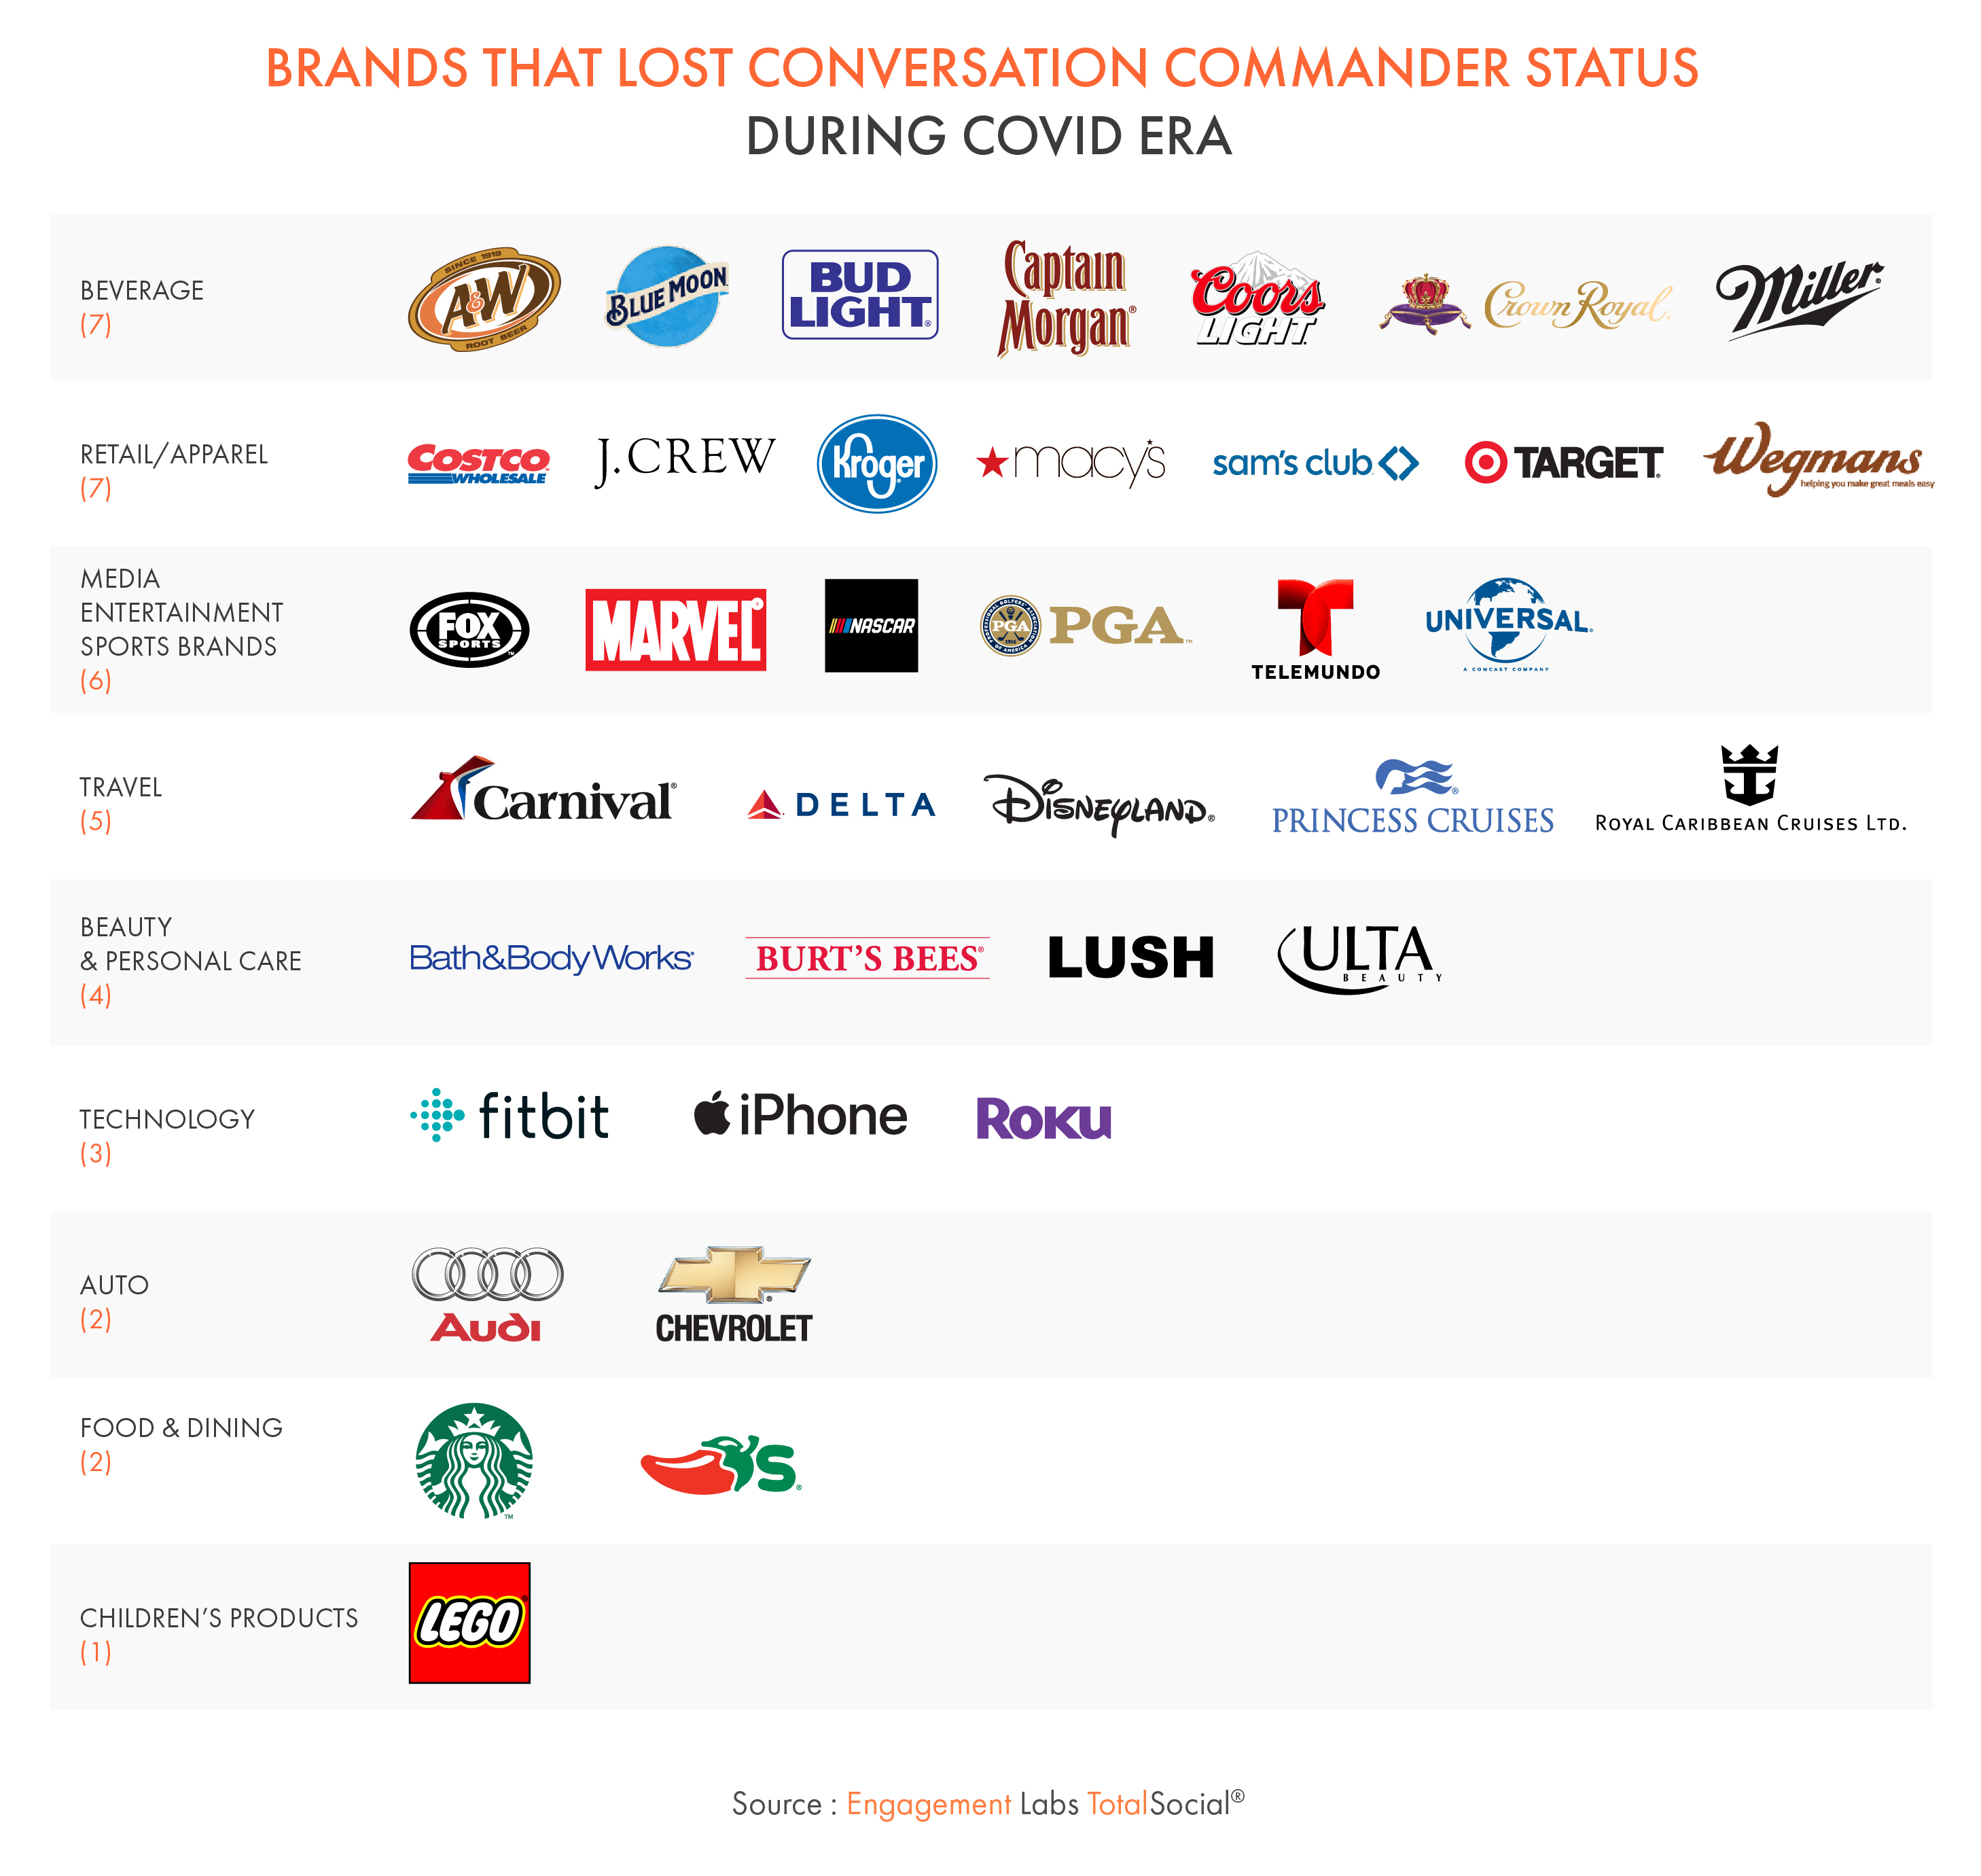 Brands that Lost Conversation Commander Status During COVID Era